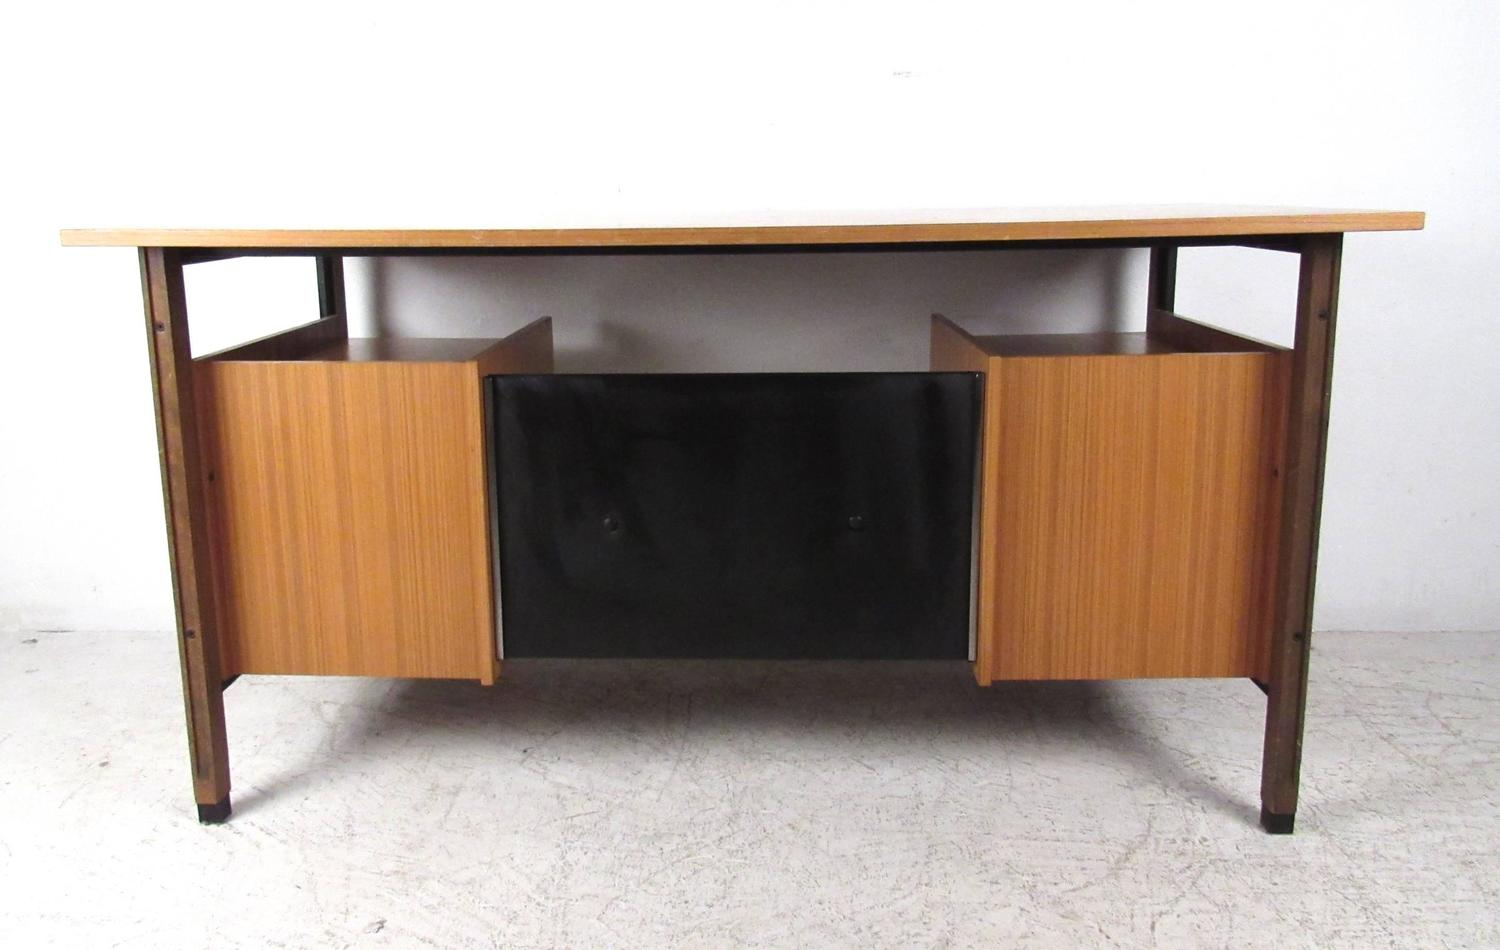 Unique midcentury style floating top desk for sale at 1stdibs for Floating desk for sale